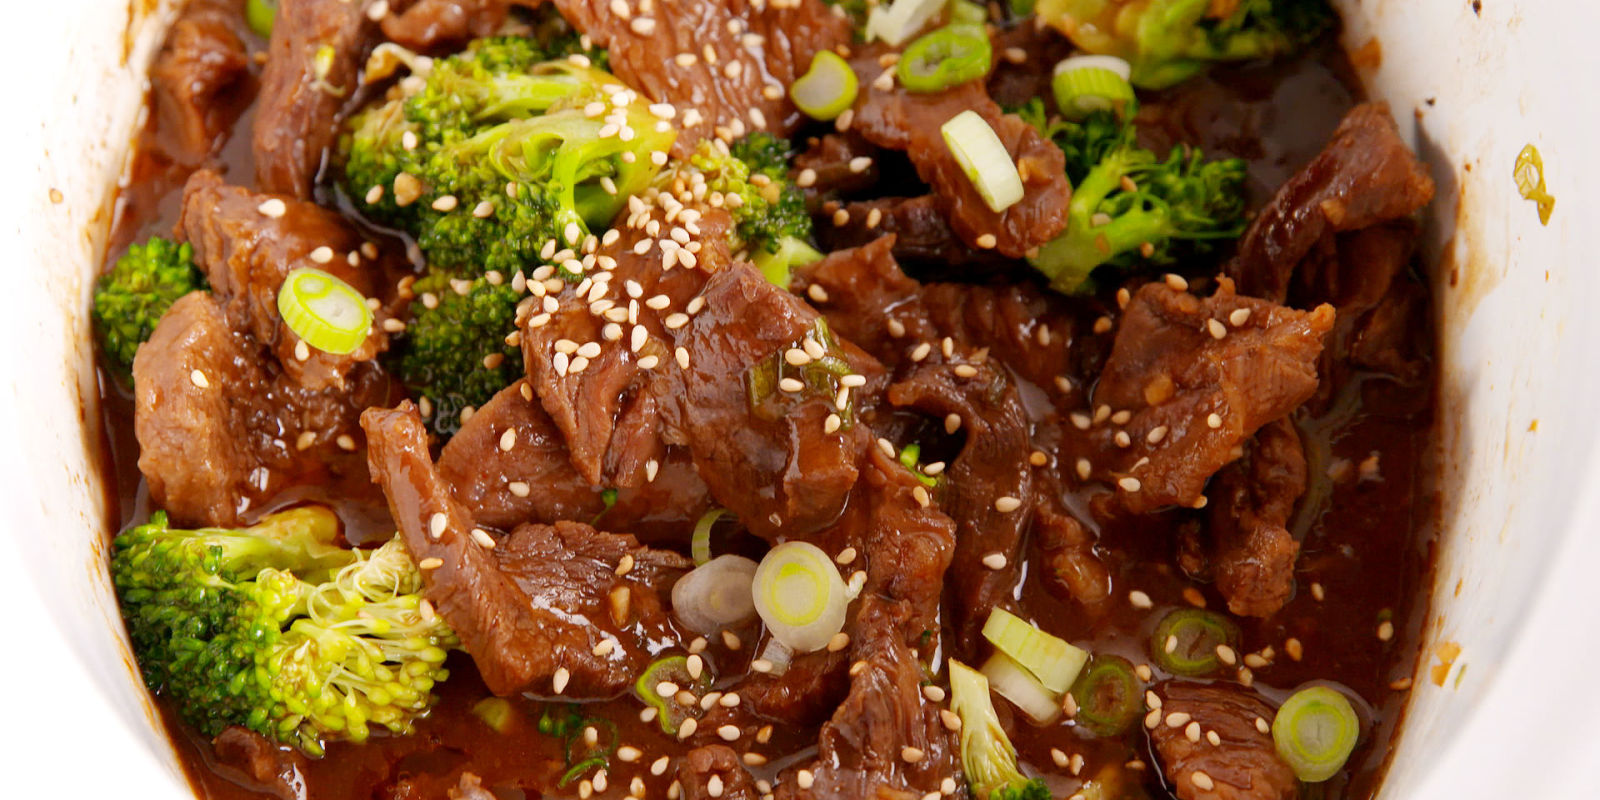 Easy Crockpot Beef and Broccoli Recipe - How to Make Slow ...